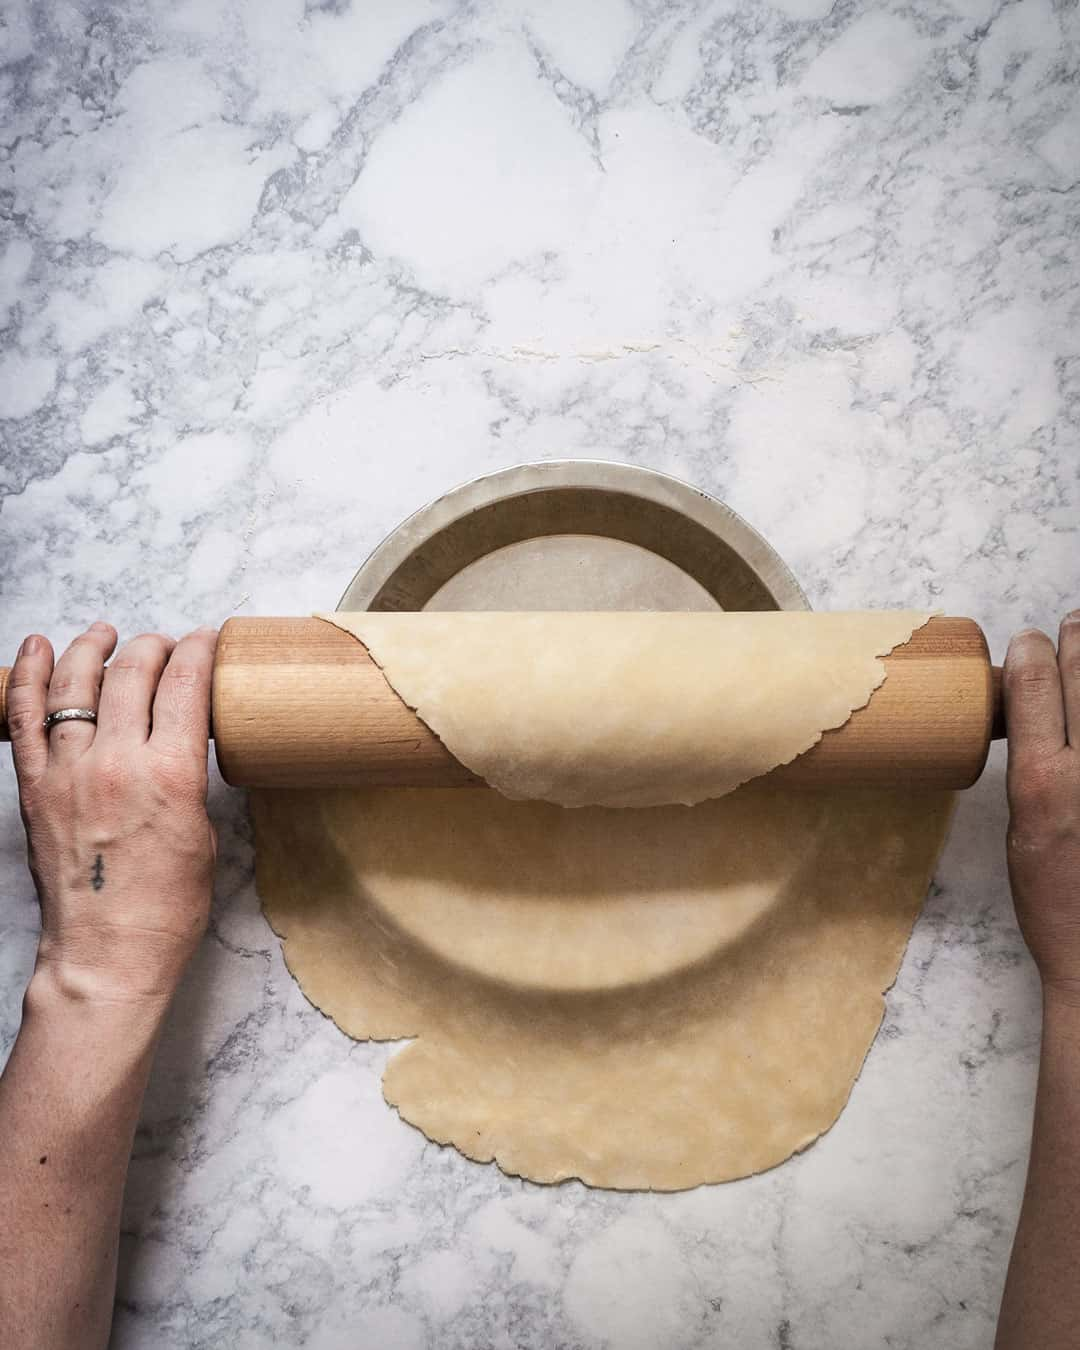 Marble surface with hands holding rolling pin while rolling pie dough out onto pie dish